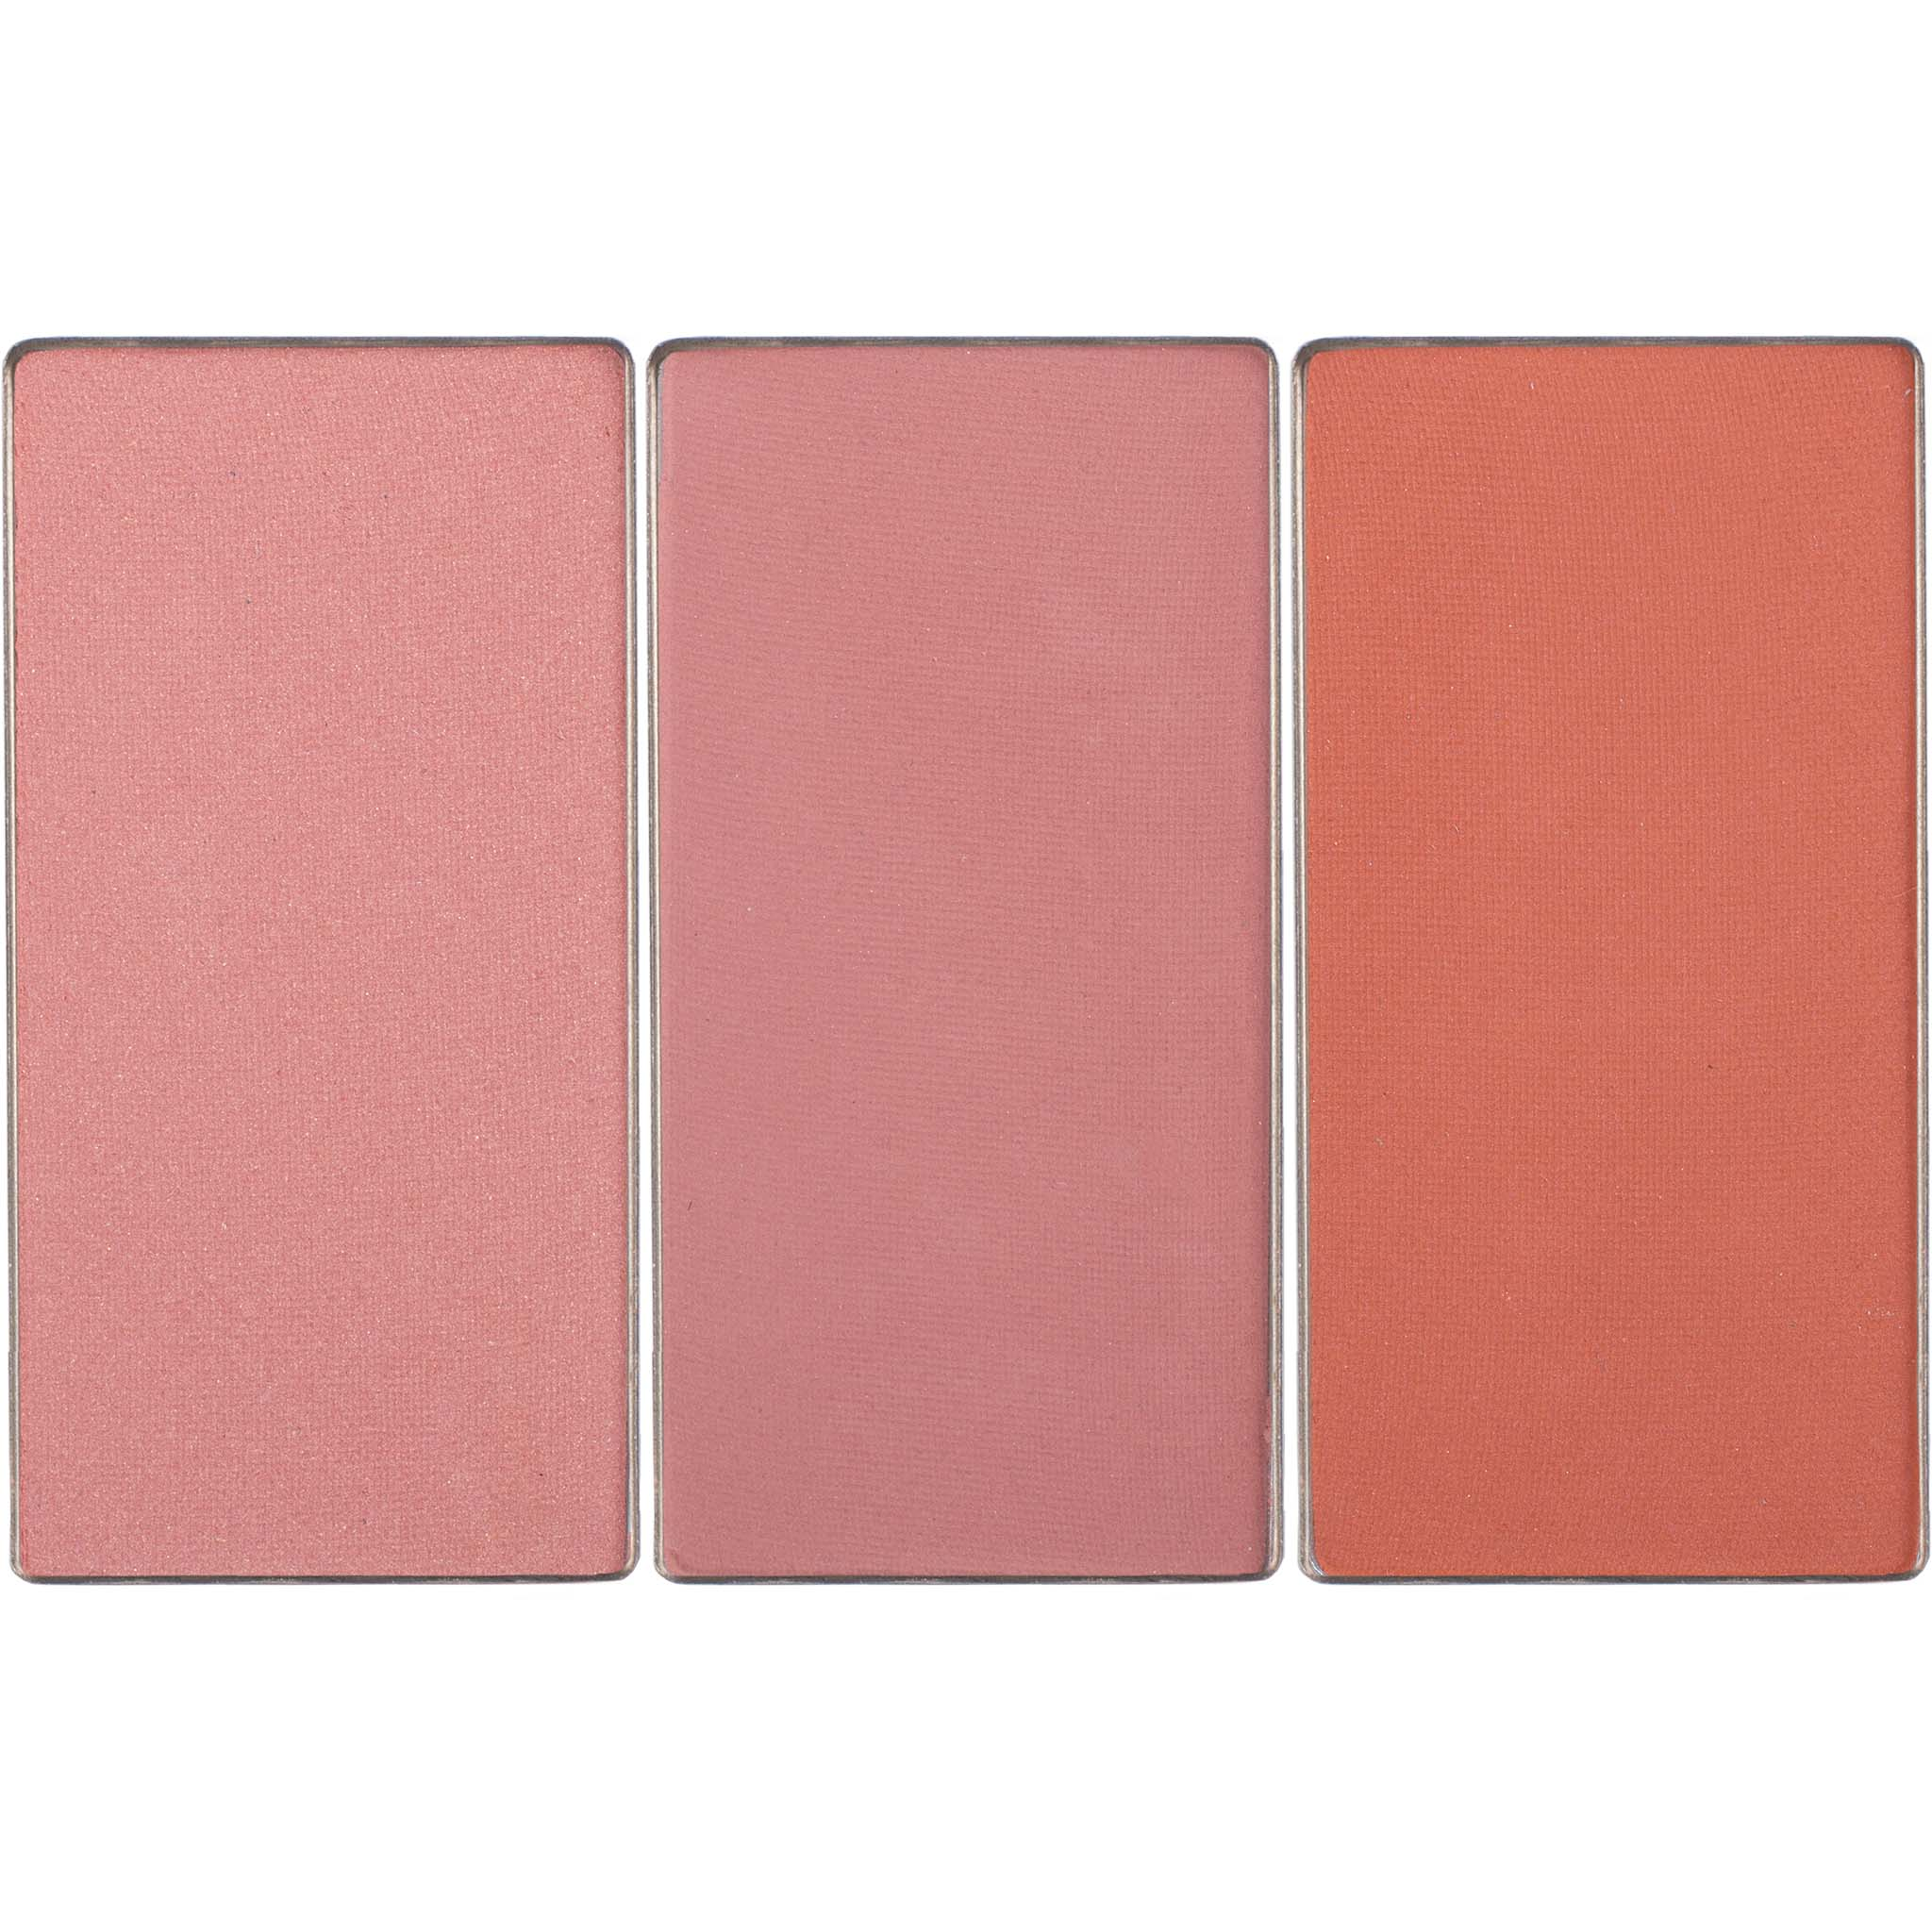 Natural Blush (for refillable make up pallette)